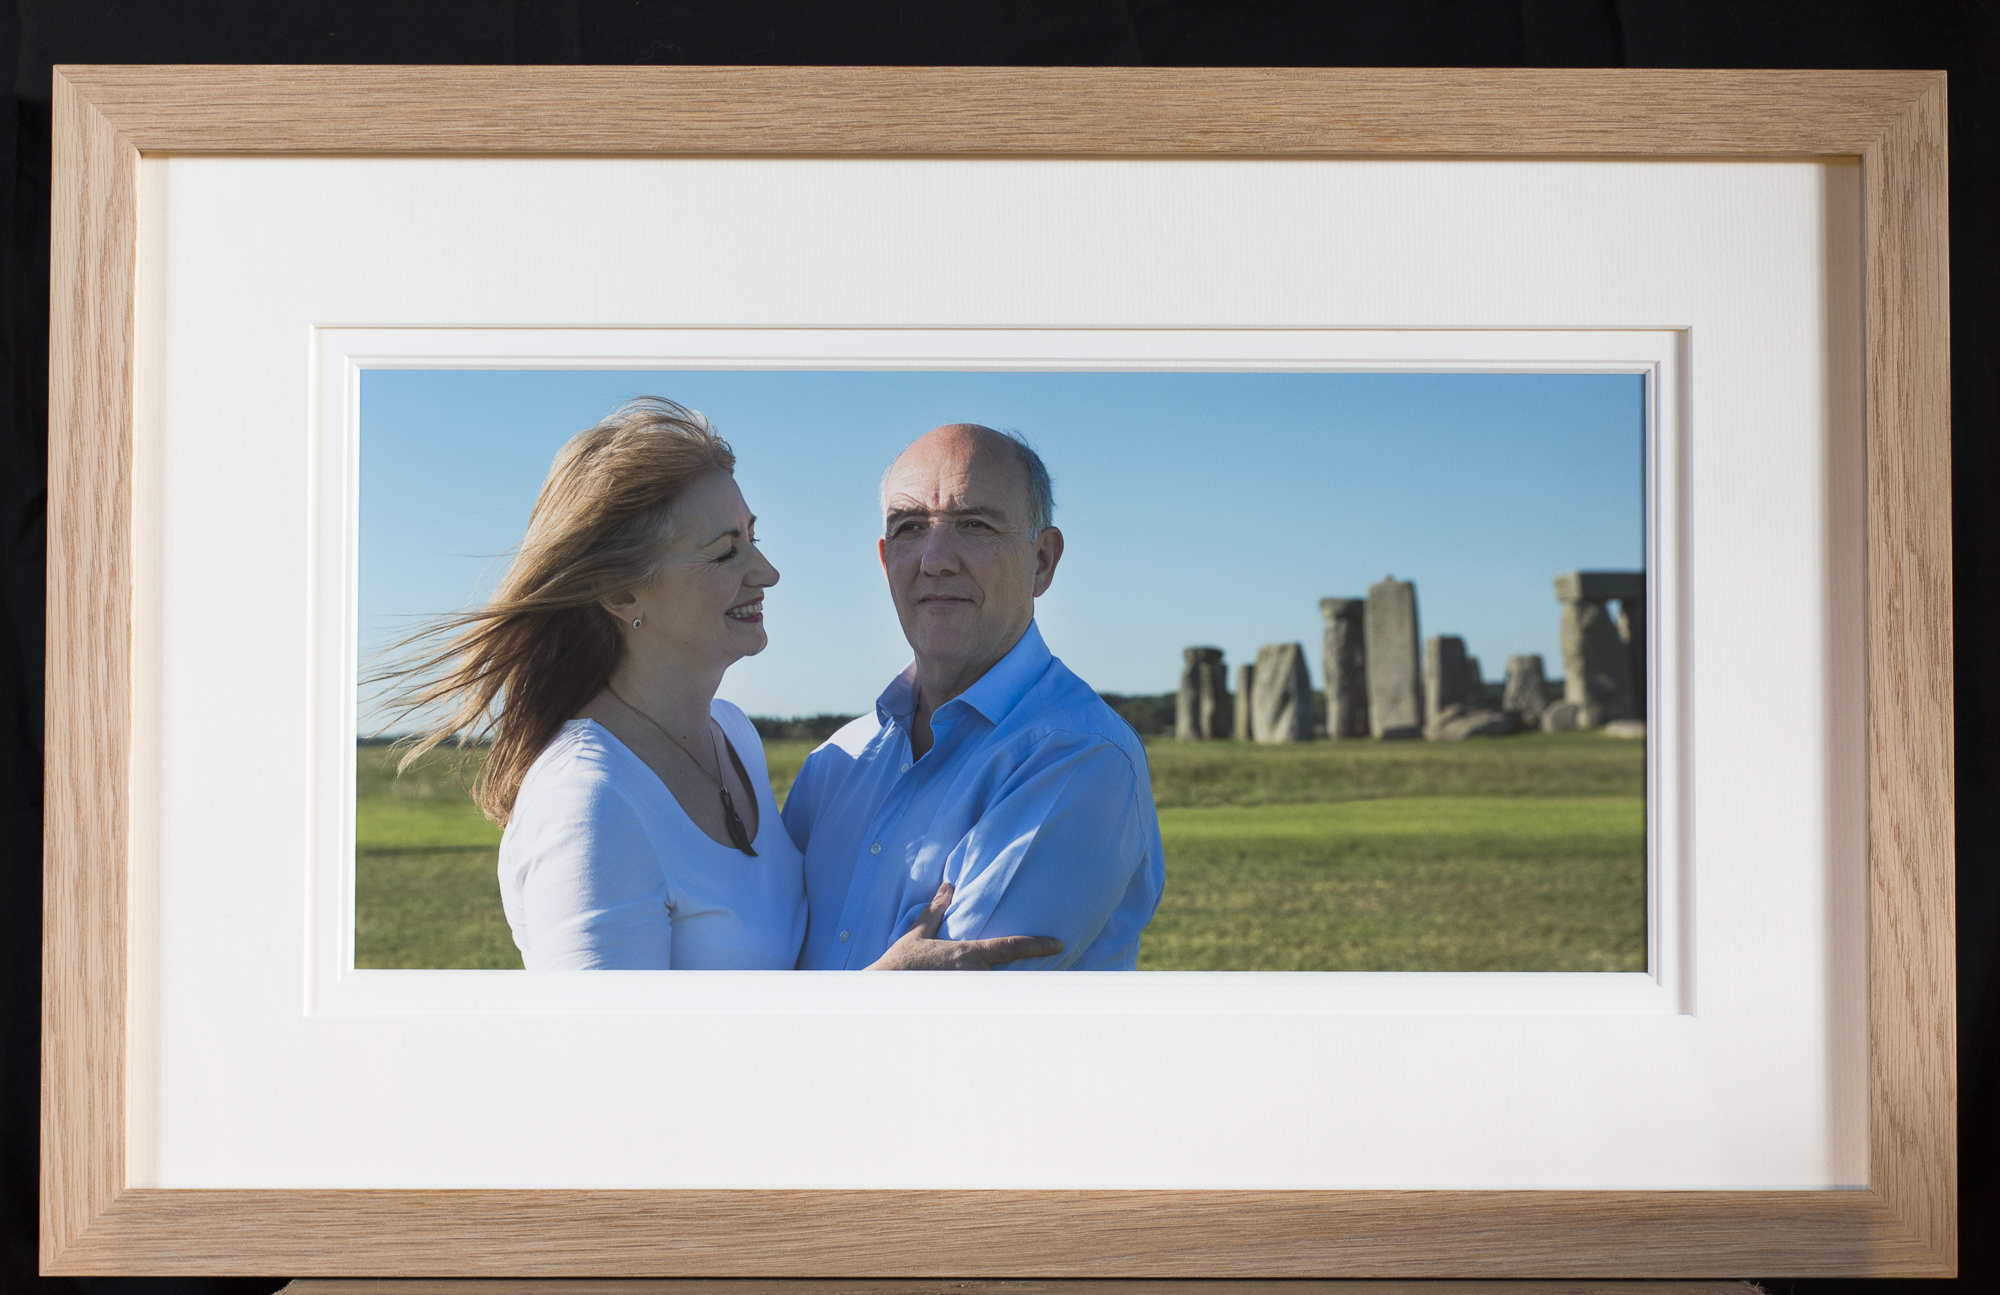 """Bespoke Panorama fine art print 18 x 8.5"""" on heavyweight Fotospeed cotton rag in a solid oak frame 24 x 14.5"""" and 27mm moulding, with a contemporary triple Lopez mount: £195"""